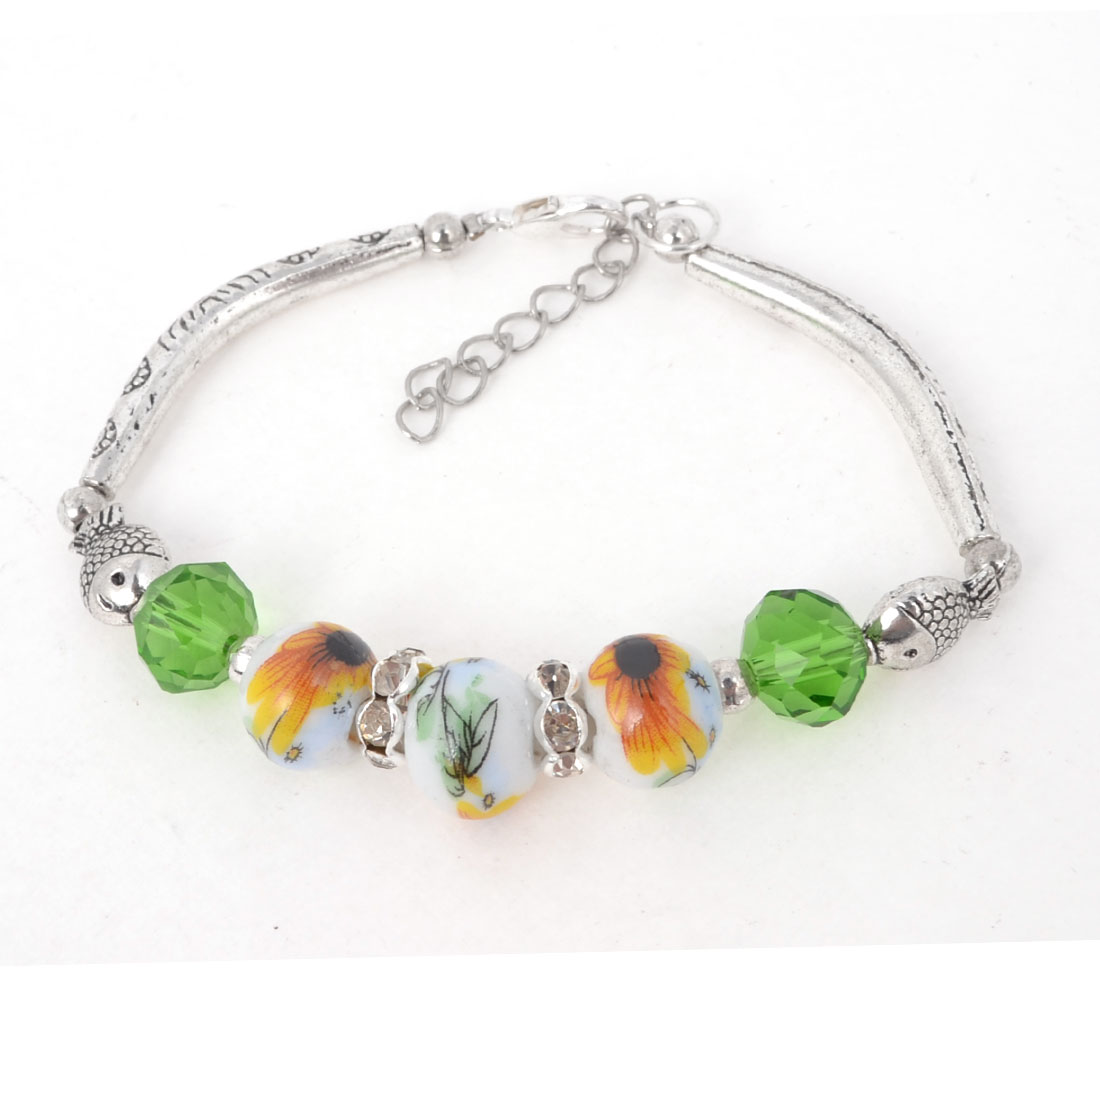 Ladies Vintage Style Green Crystal Linked Manmade Beads Silver Tone Bracelet